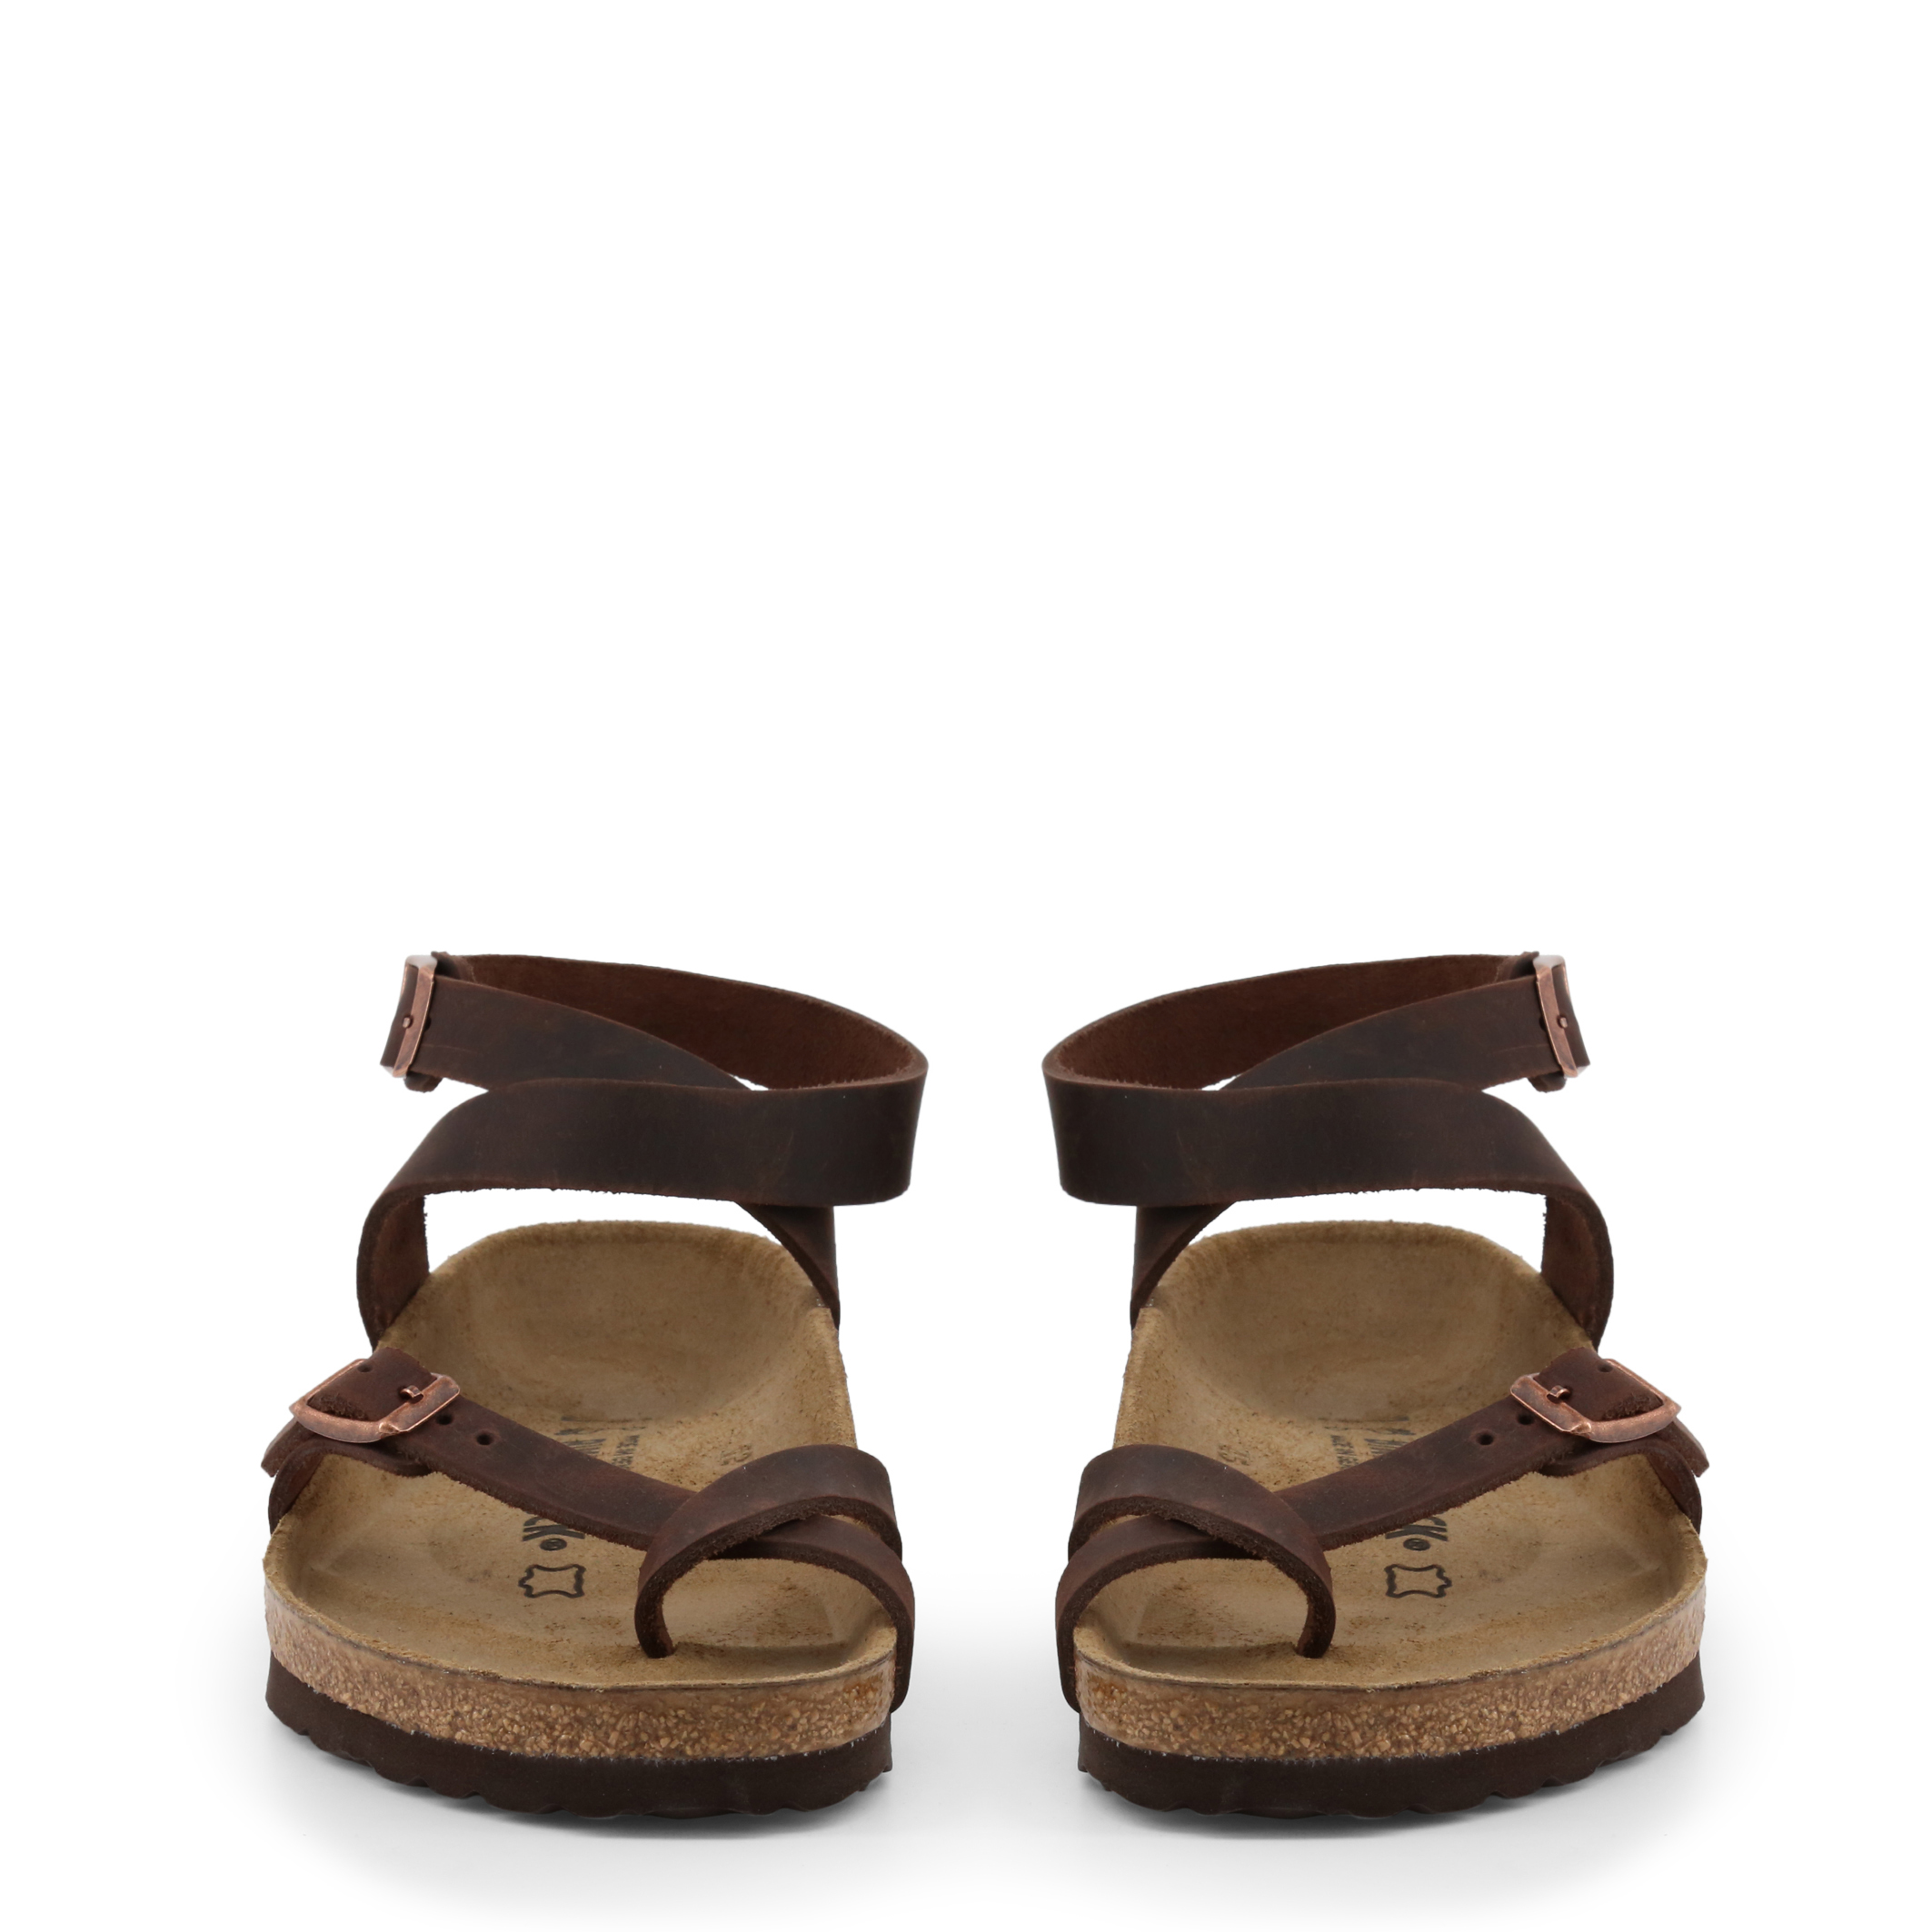 Tongs / Mules  Birkenstock YARA_OILED-LEATHER brown